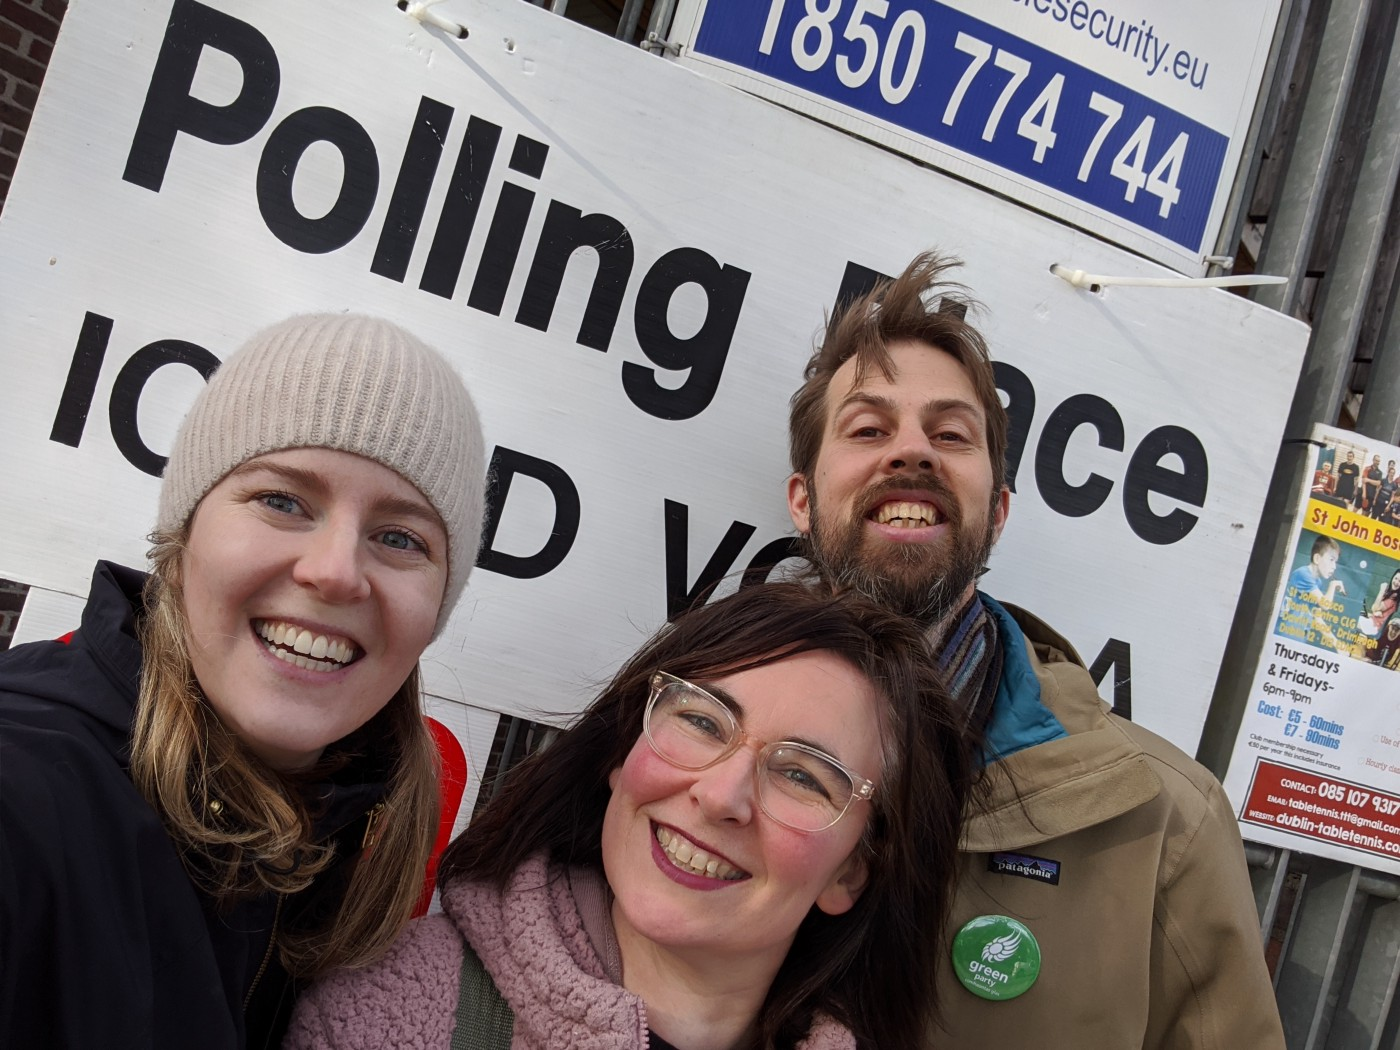 A polling day selfie with my neighbours, February 2020